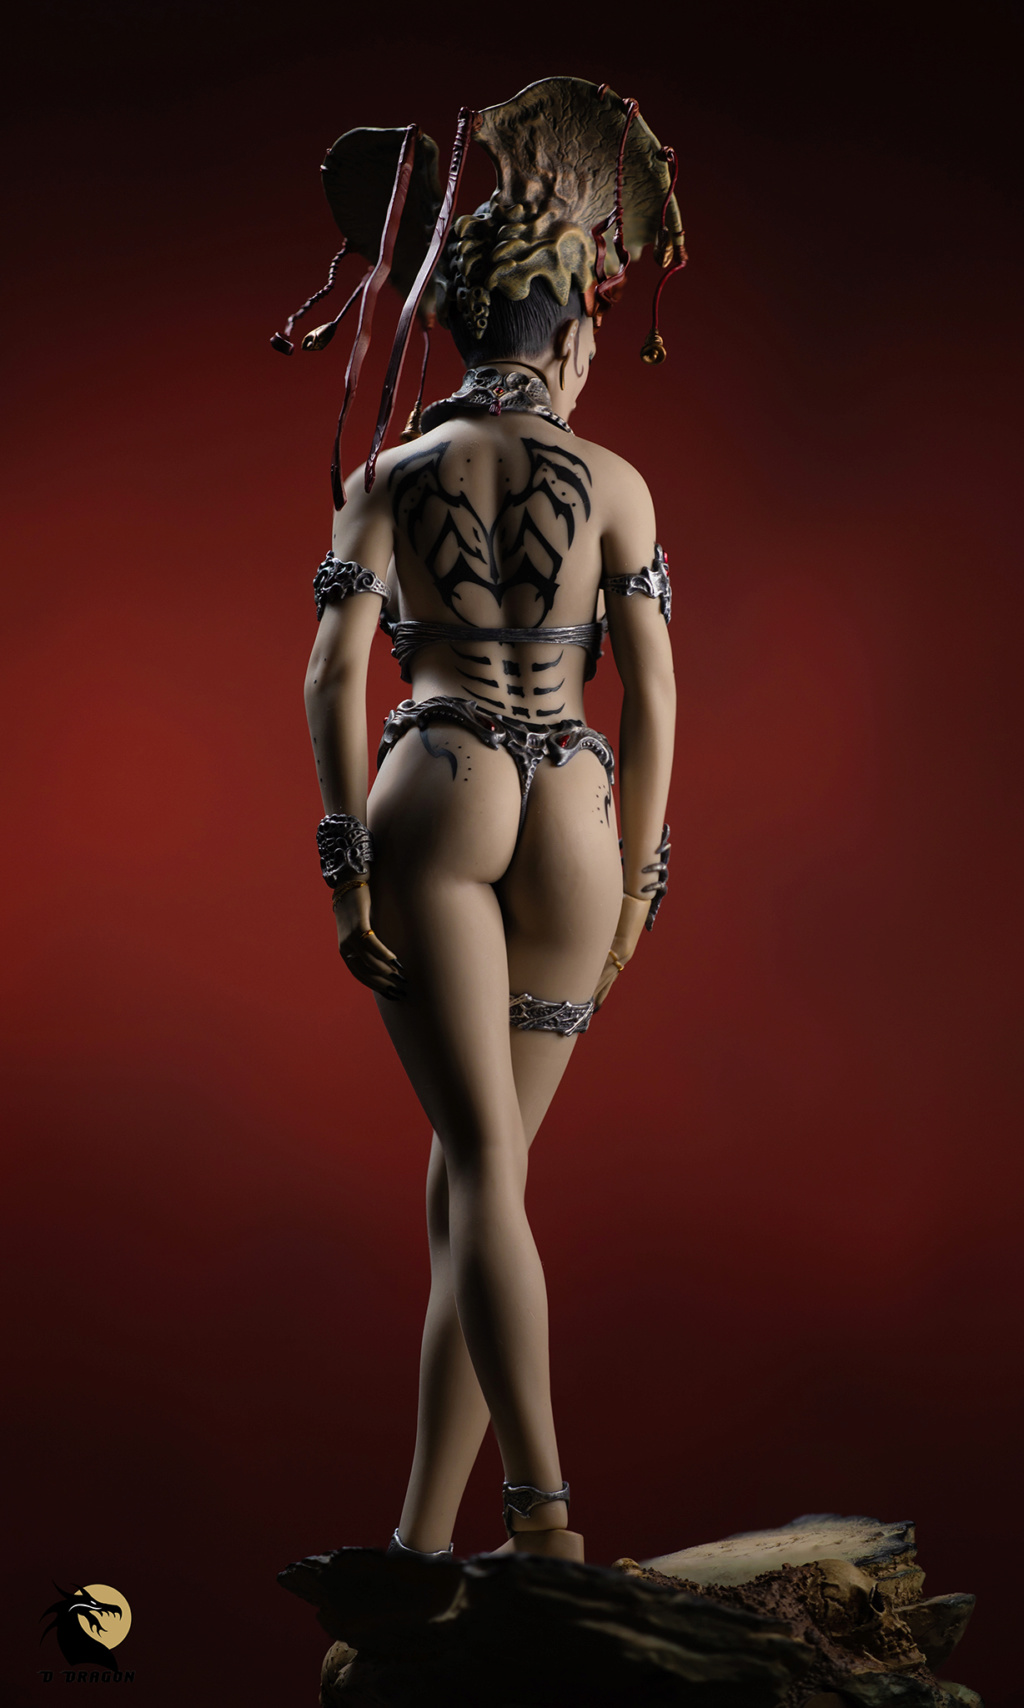 tbleague - NEW PRODUCT: Tbleague x SIDESHOW New: 1/6 Court of the Dead: Gethsemoni The Dead Queen action figure (PL2019-147) - Page 2 Gethse21